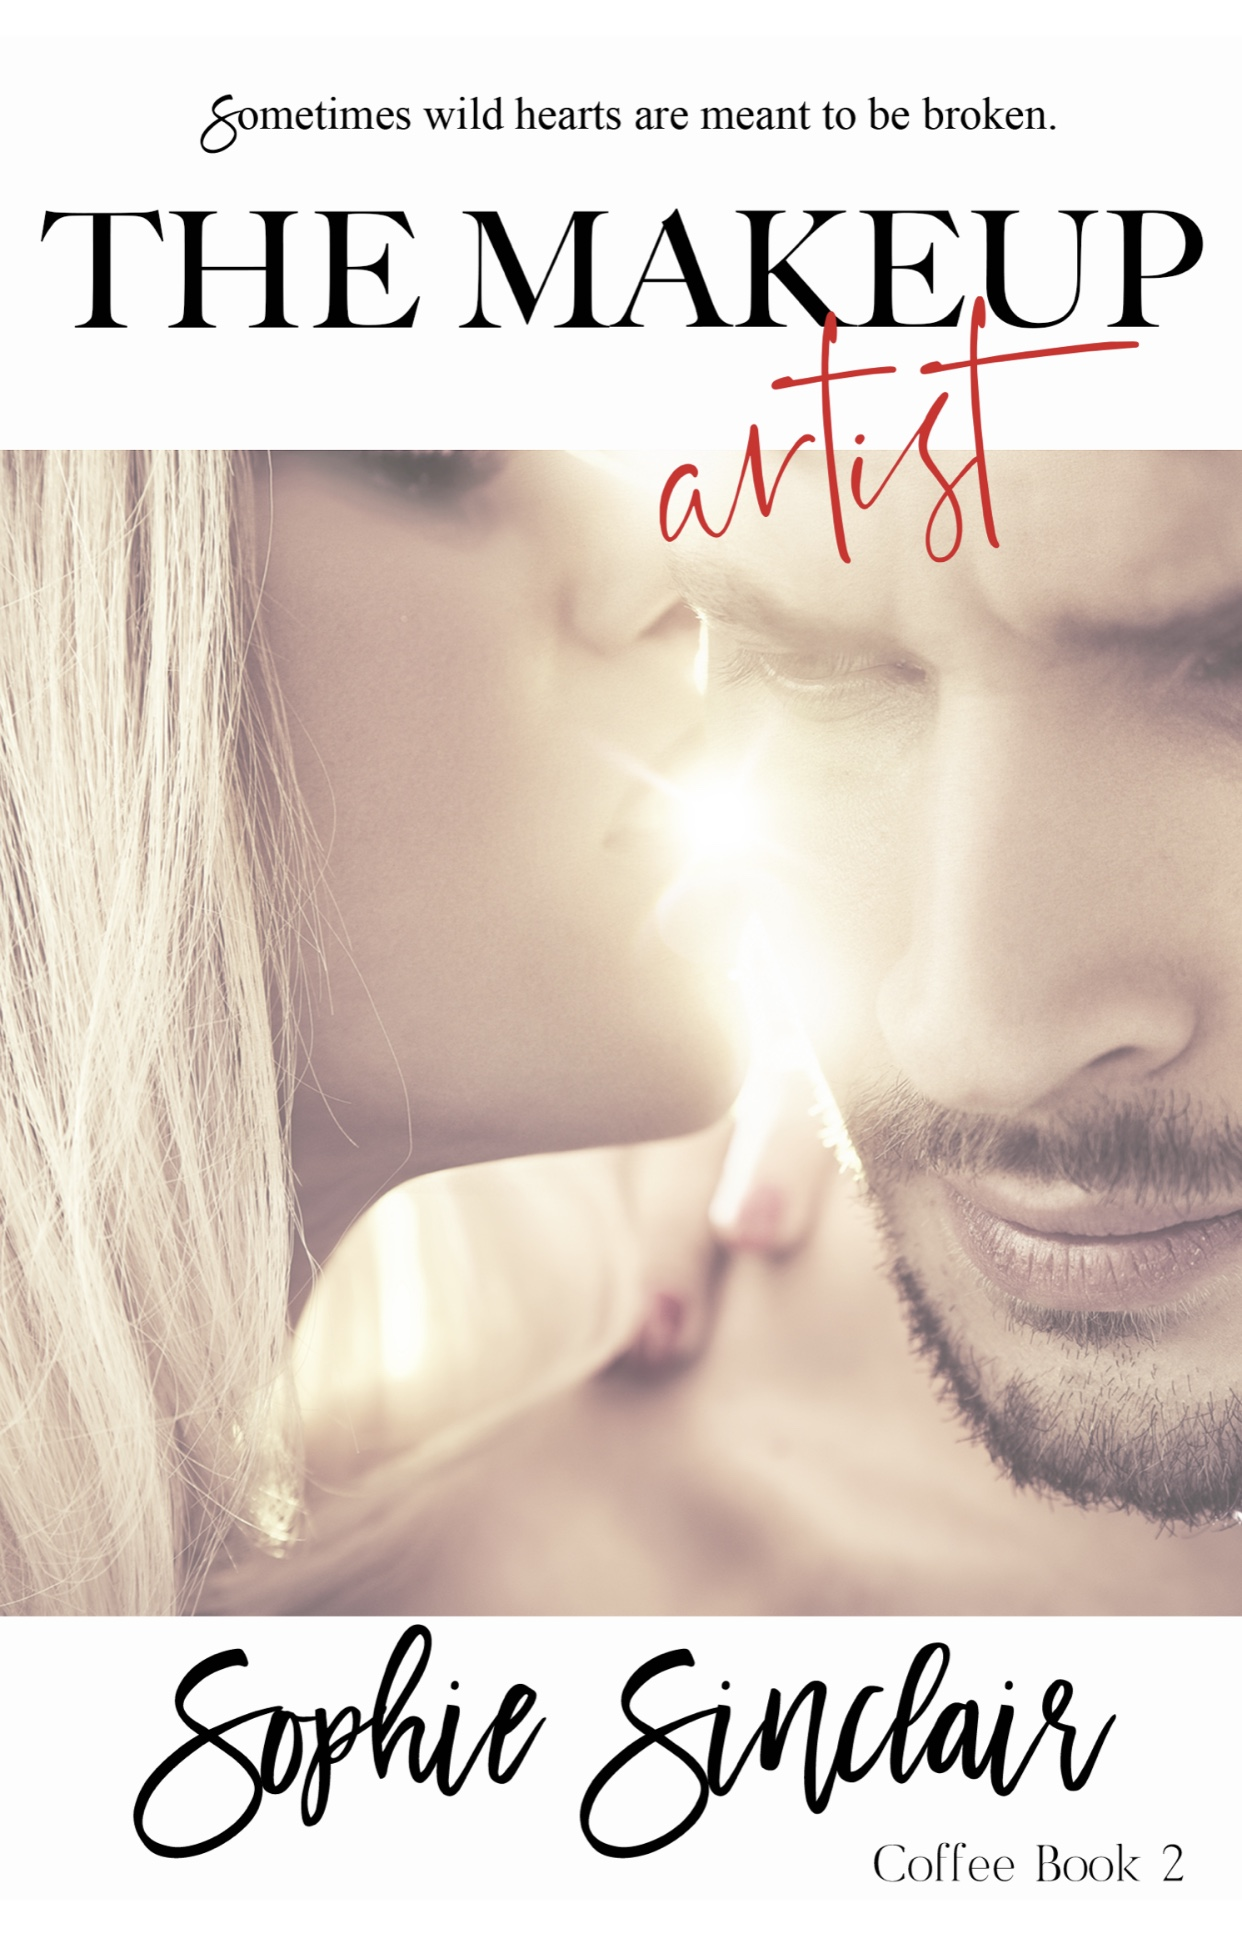 The Makeup Artist (Coffee Book #2)